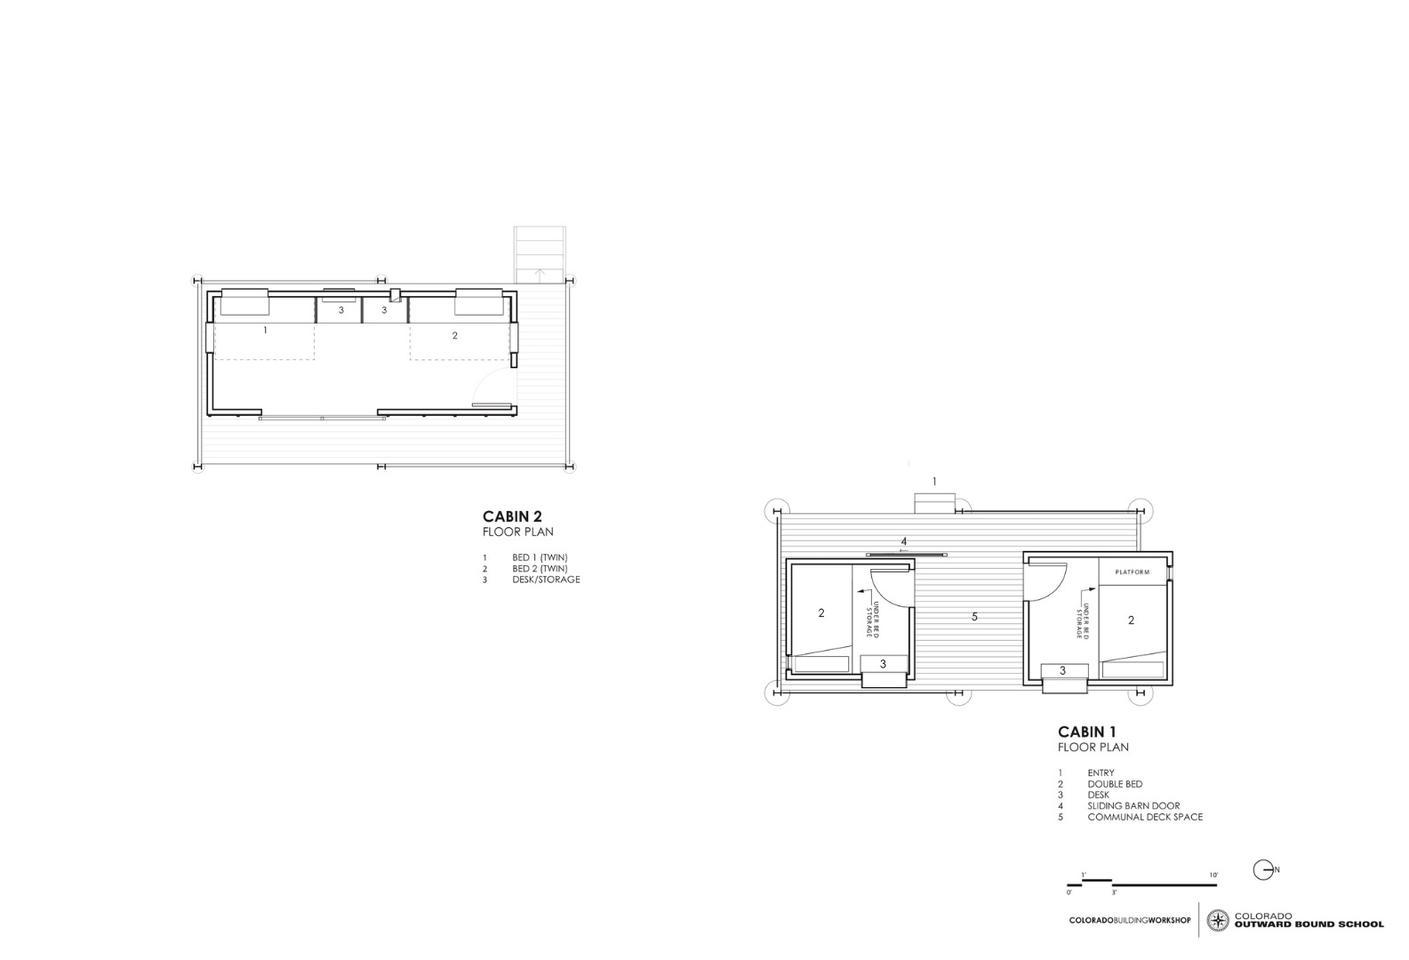 Architectural drawing of the micro-cabins